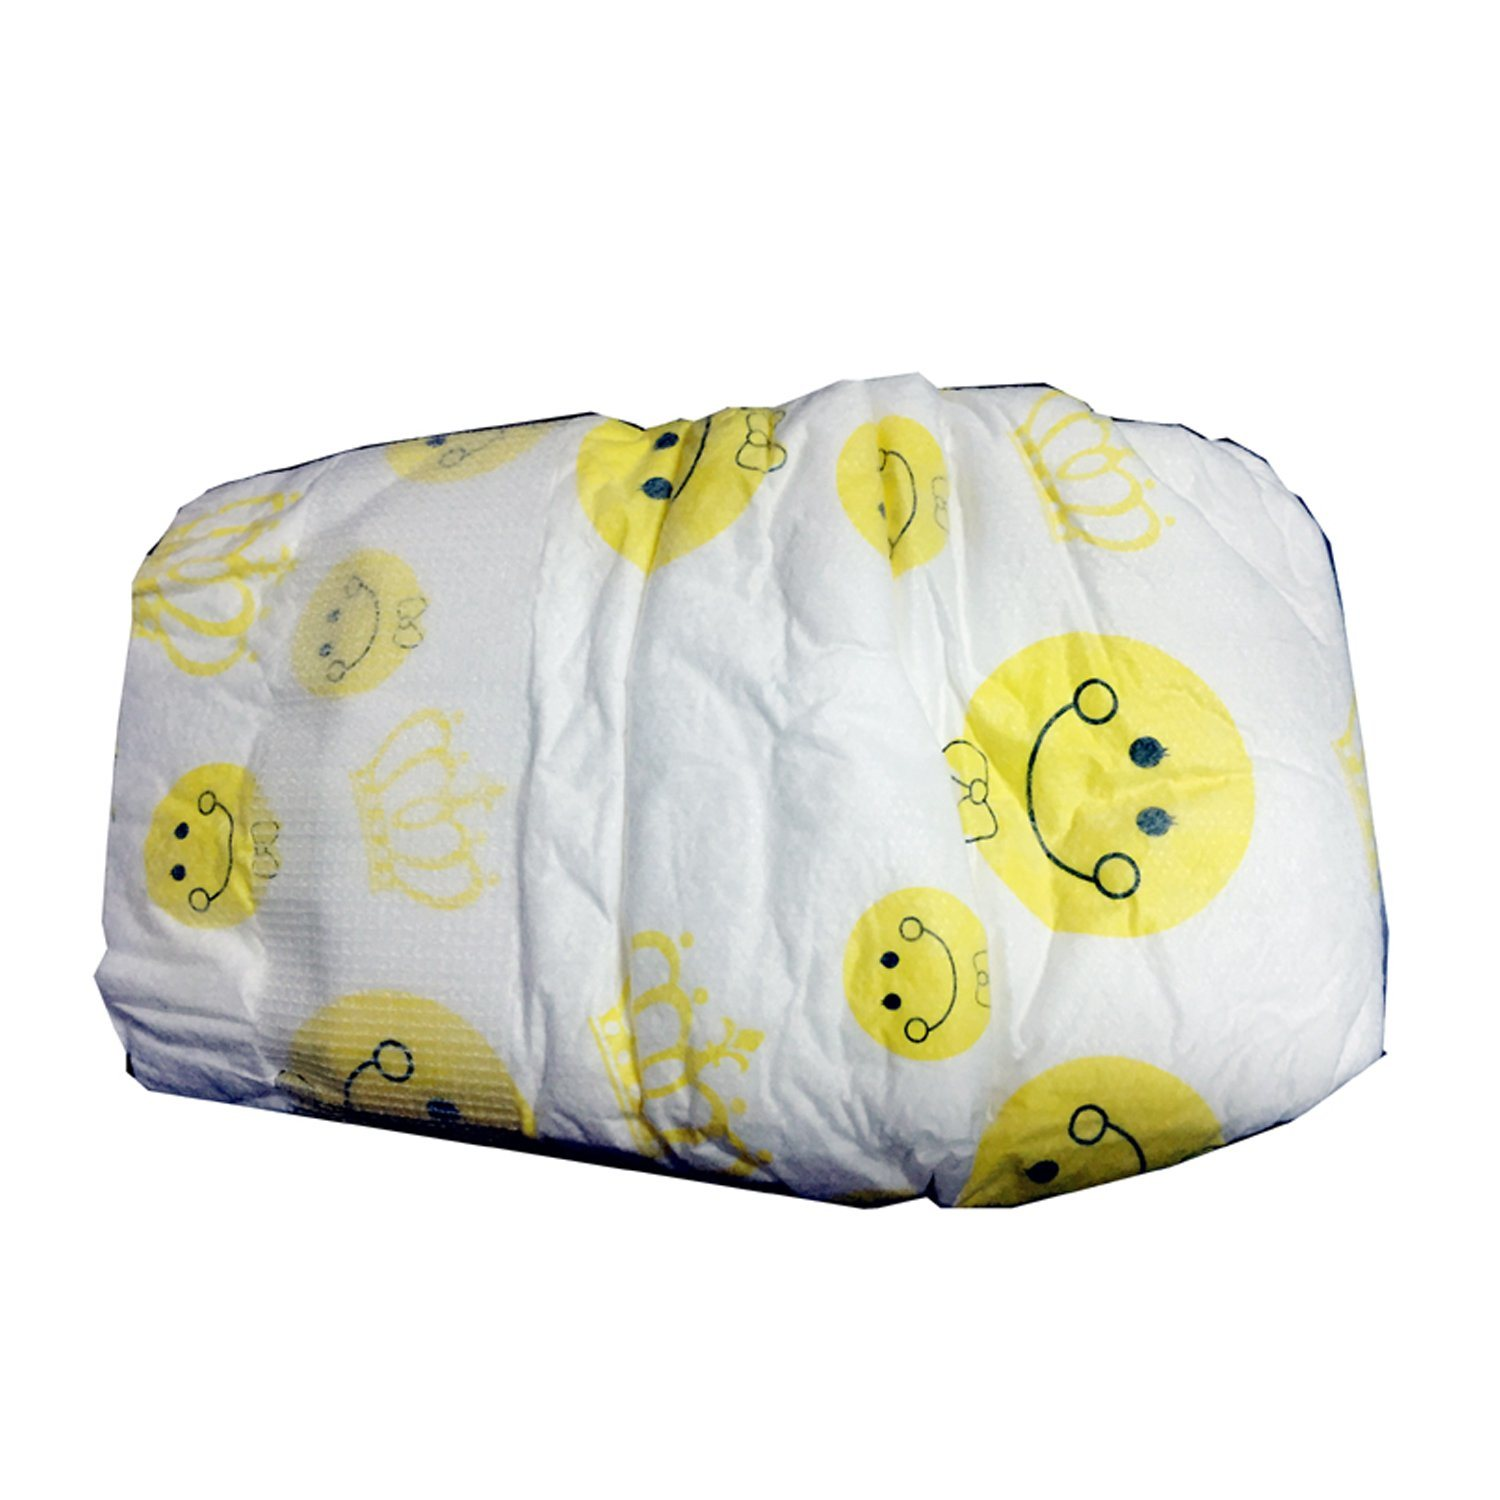 Smile Face Cartoon Picture China Baby Diapers Good Quality